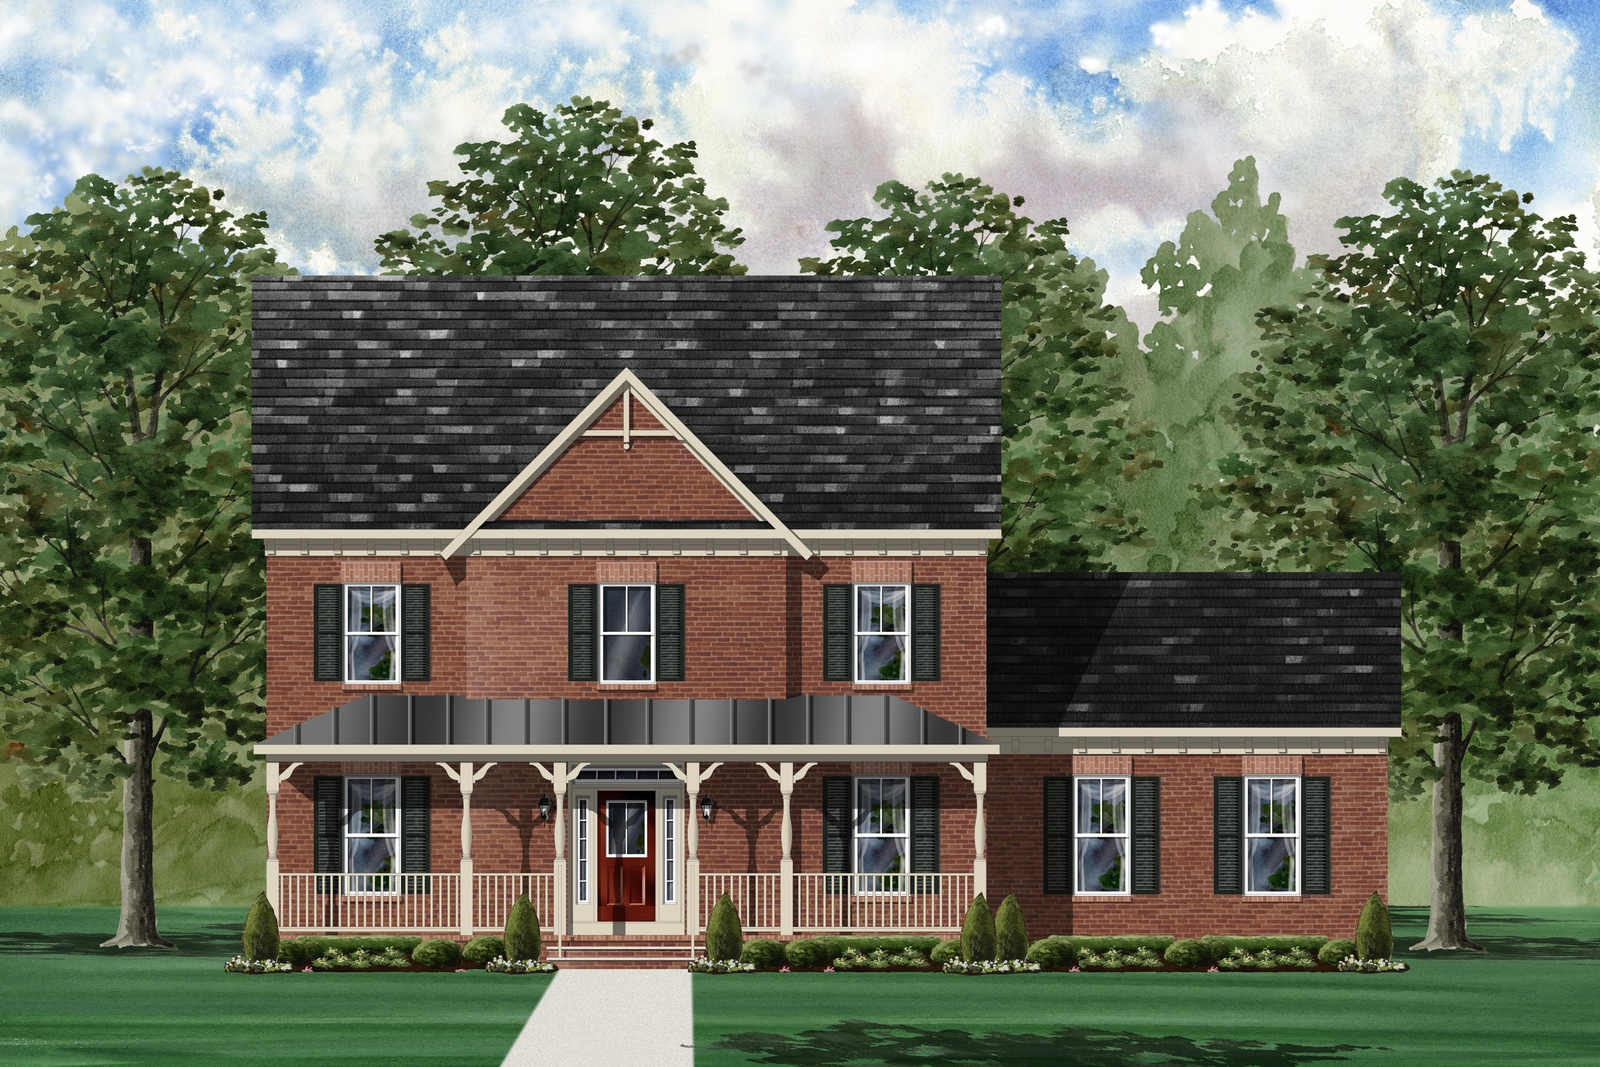 New abingshire home model for sale heartland homes for Heartland homes pittsburgh floor plans